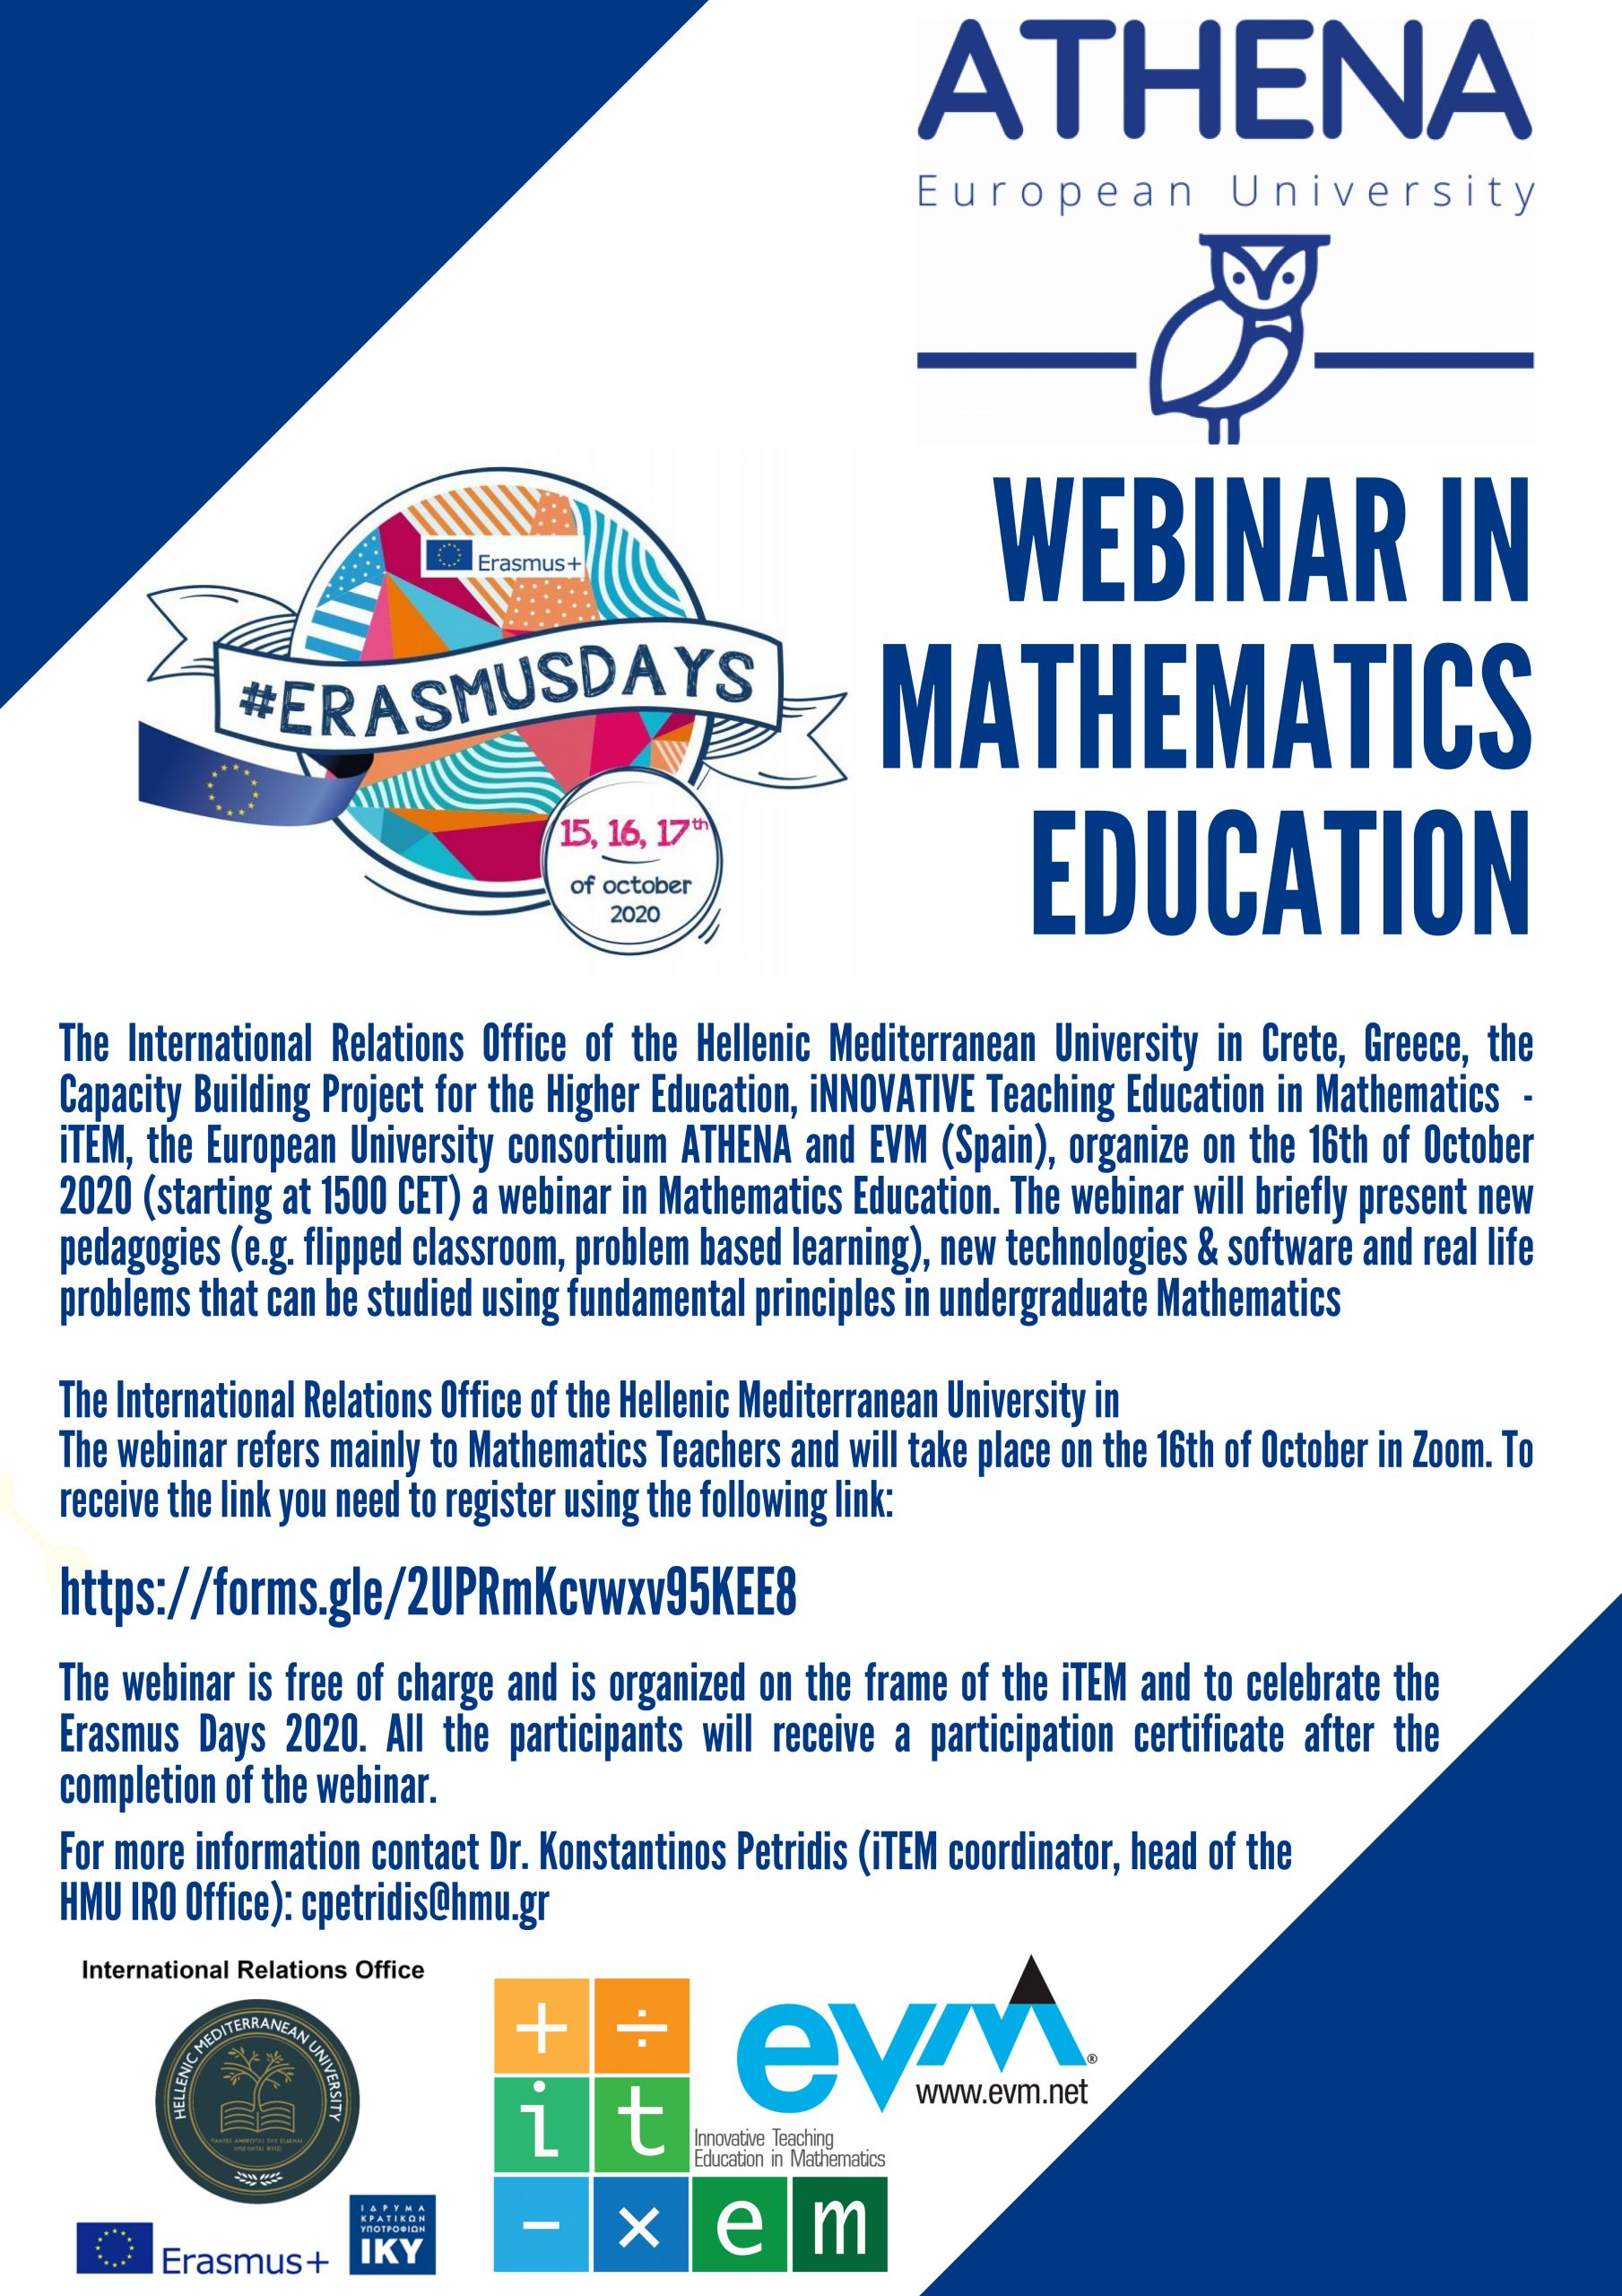 Webinar in Mathematics Education